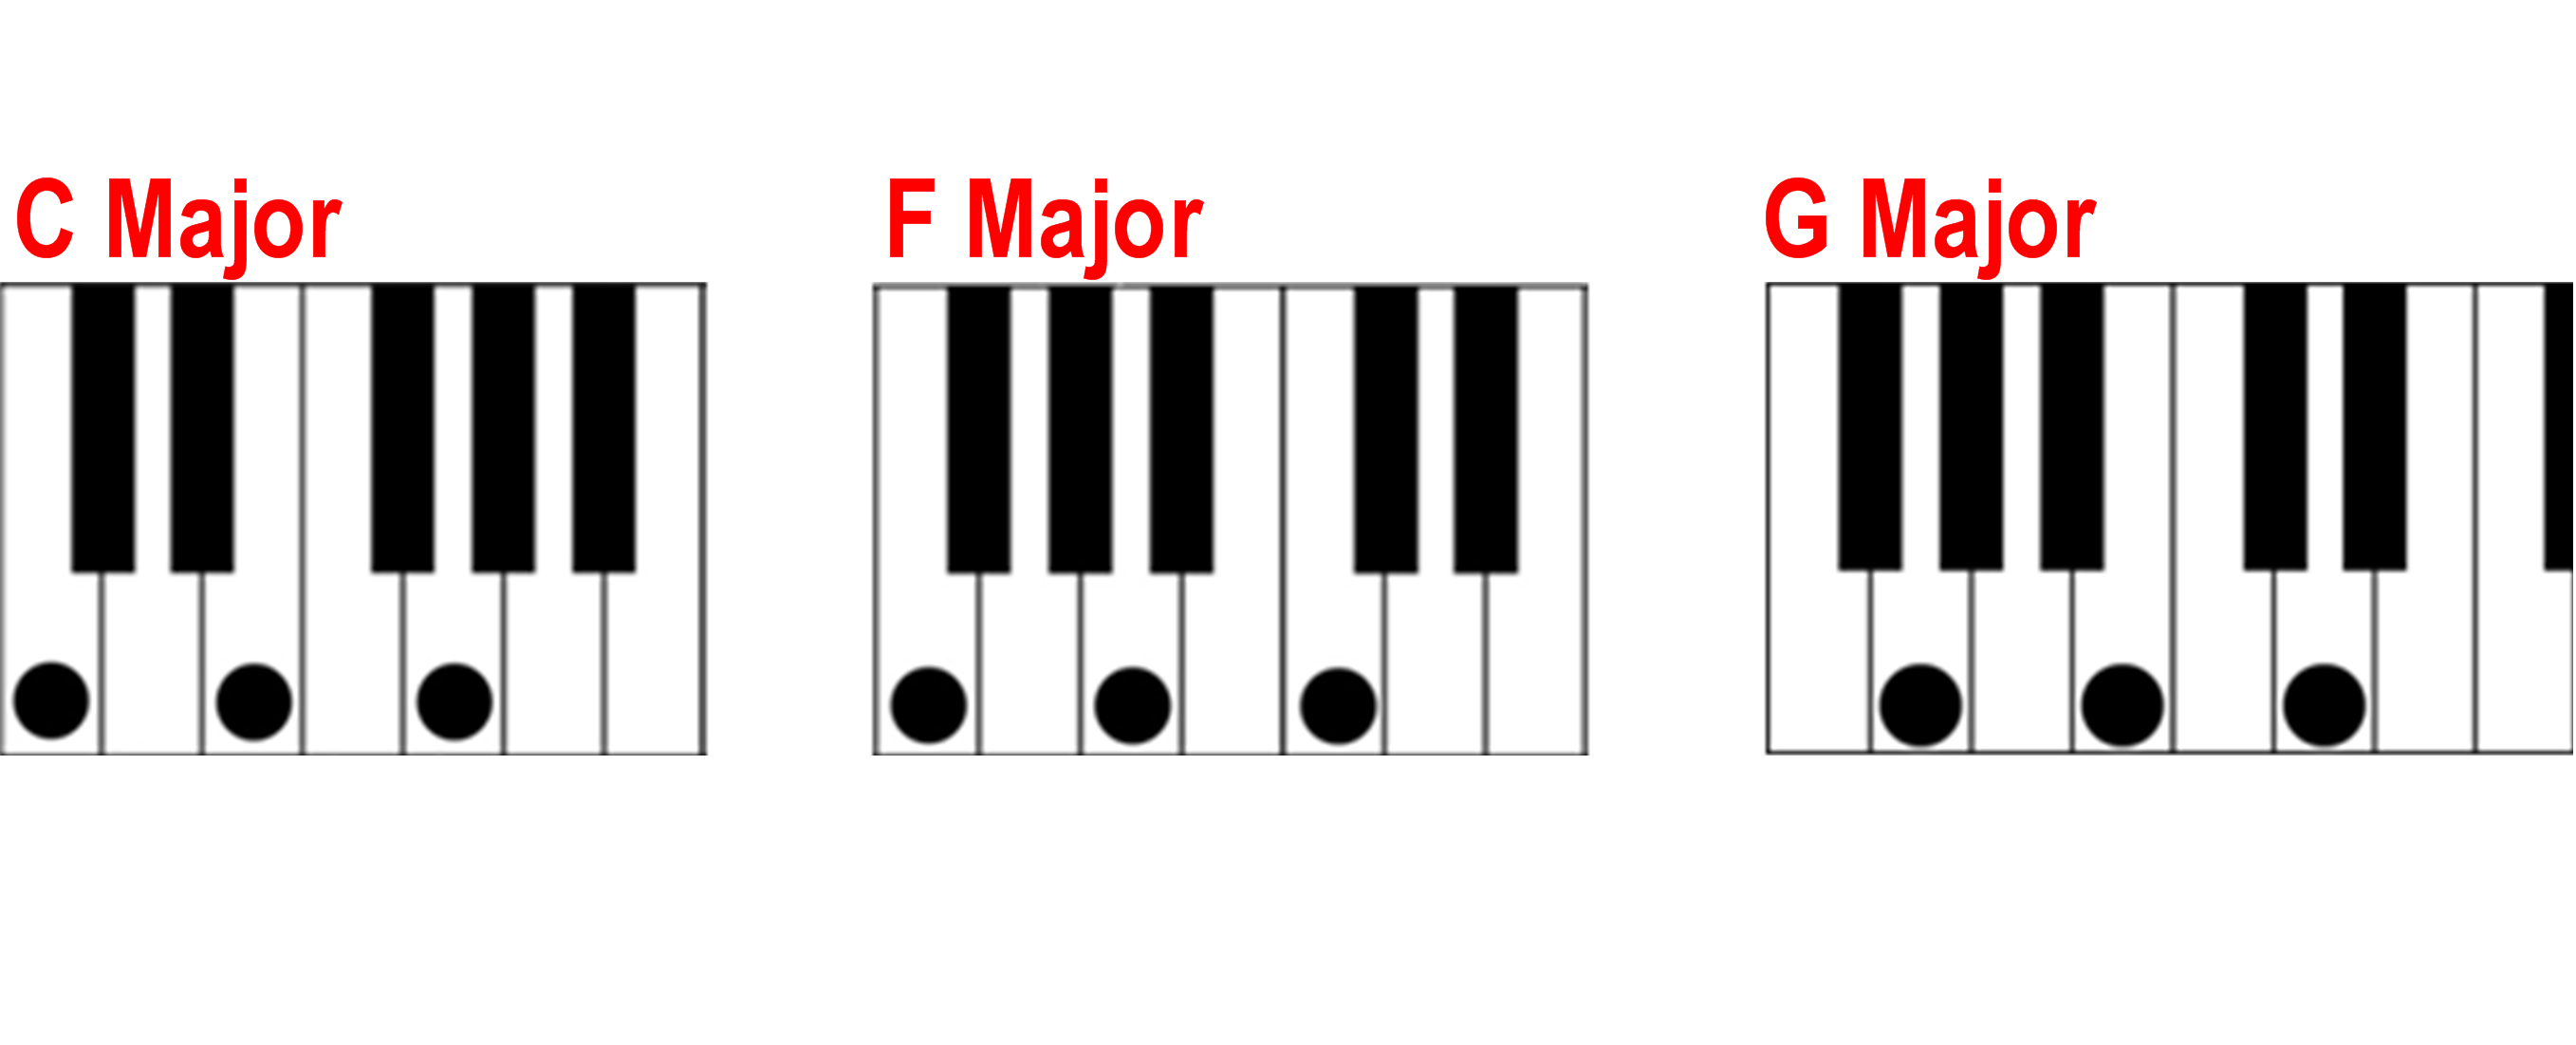 finding a major chord on the piano c f and g major piano chords